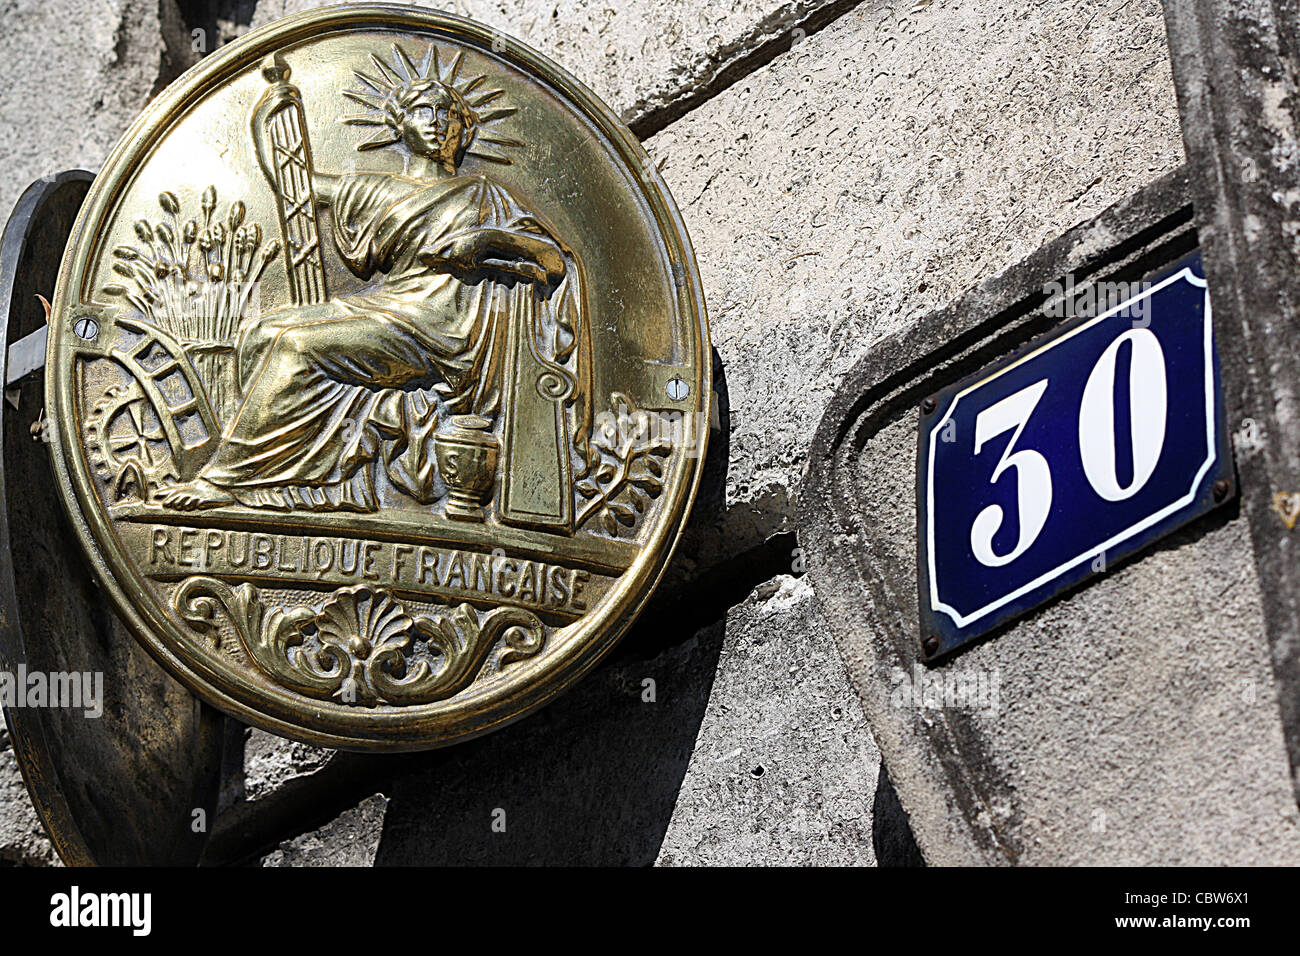 Brass plate indicating presence of lawyers office, Angouleme, SW France - Stock Image